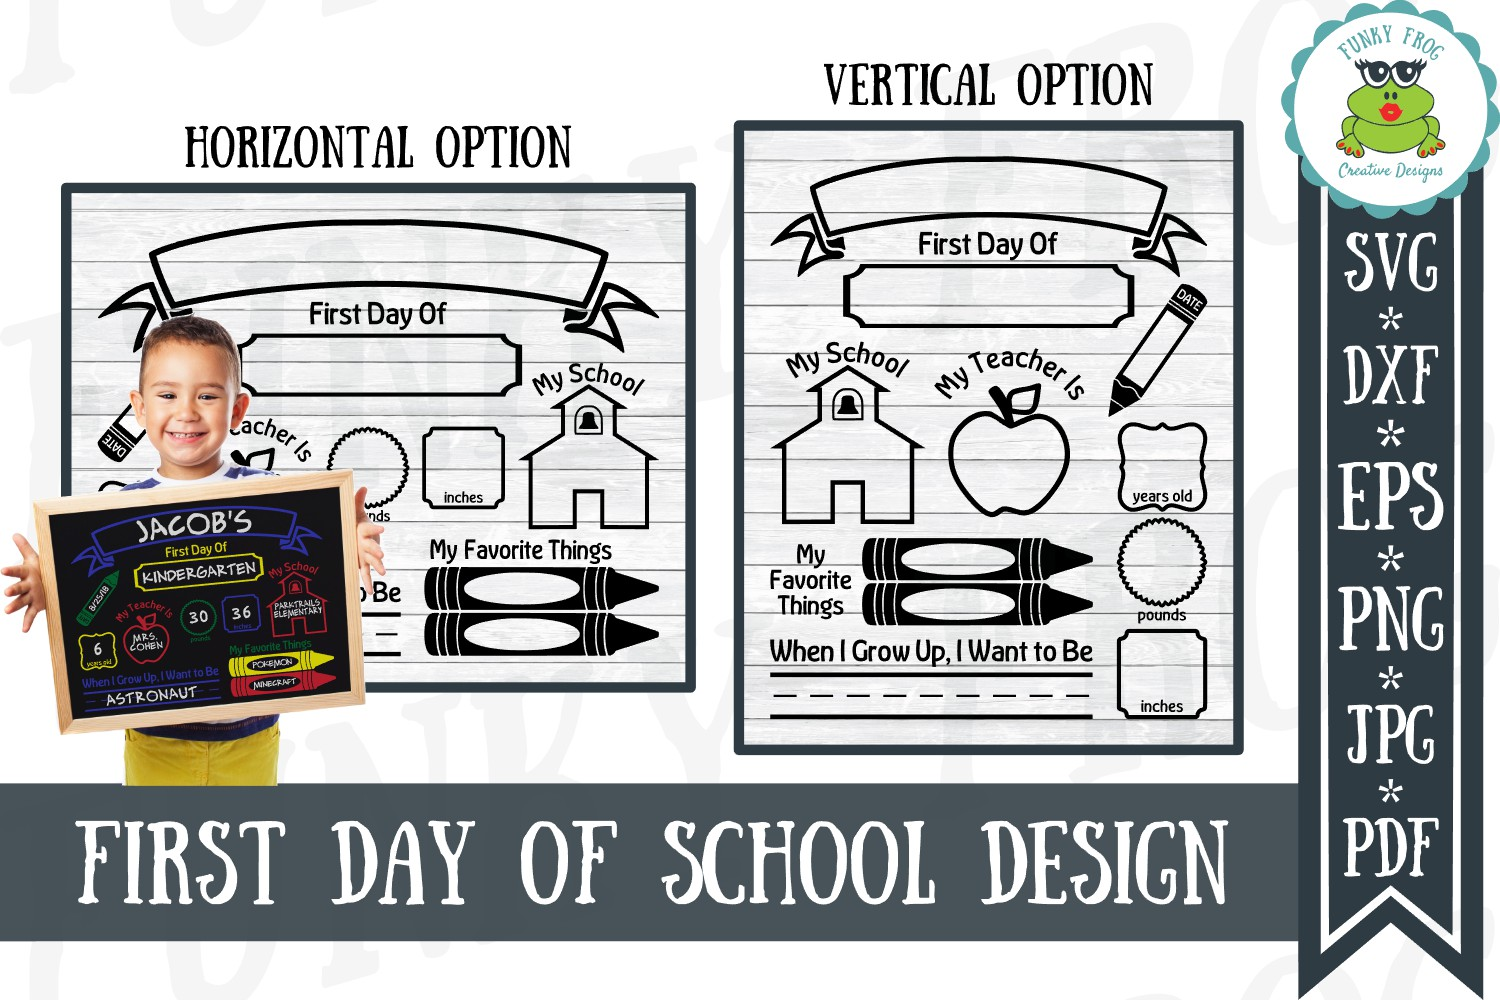 Download Free First Day Of School Graphic By Funkyfrogcreativedesigns for Cricut Explore, Silhouette and other cutting machines.